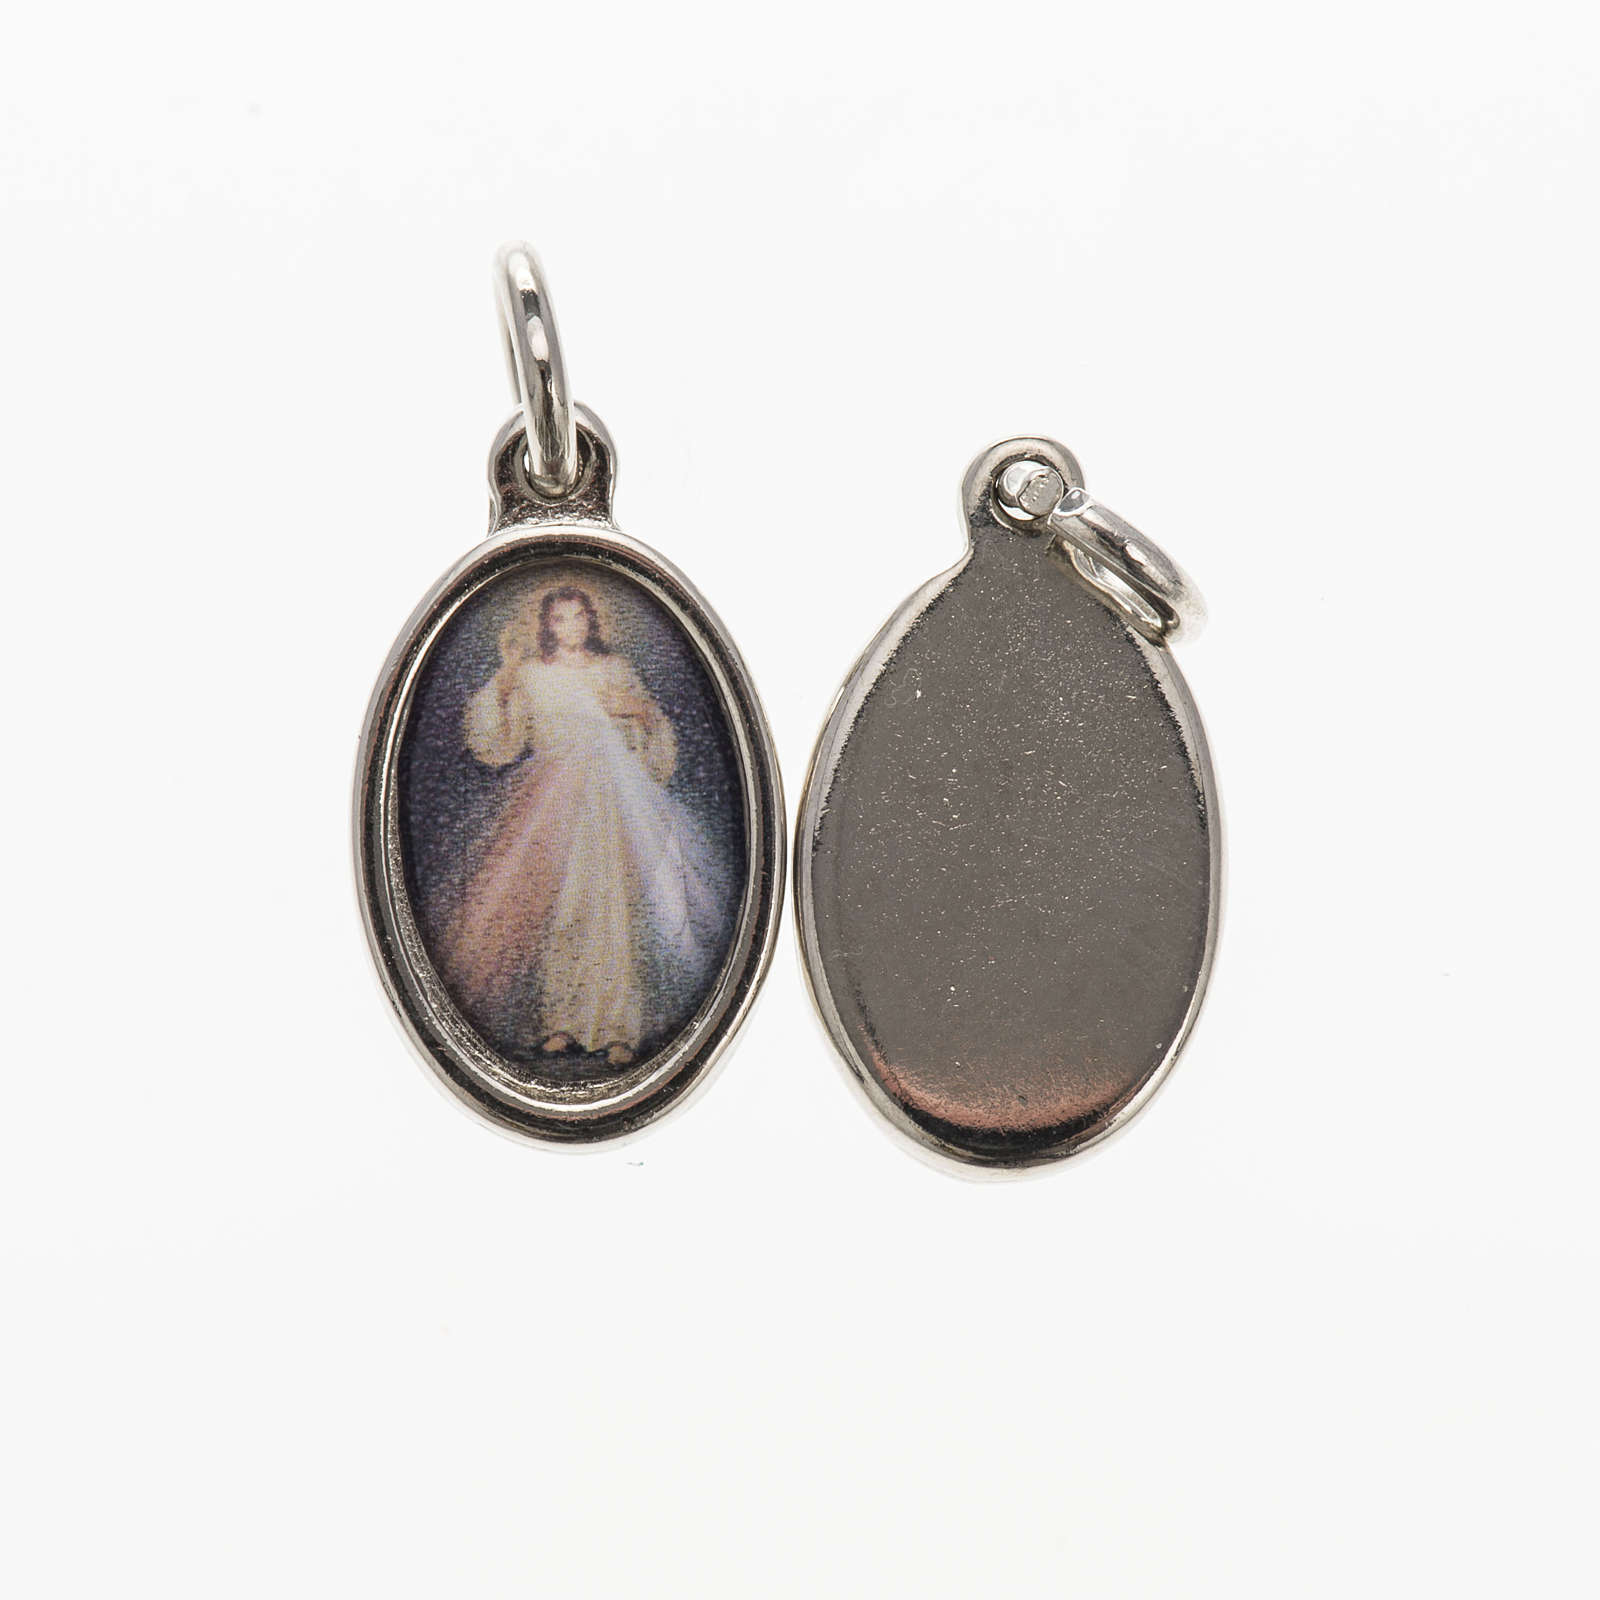 Divine Mercy medal in nickel plated metal 1.5x1cm 4